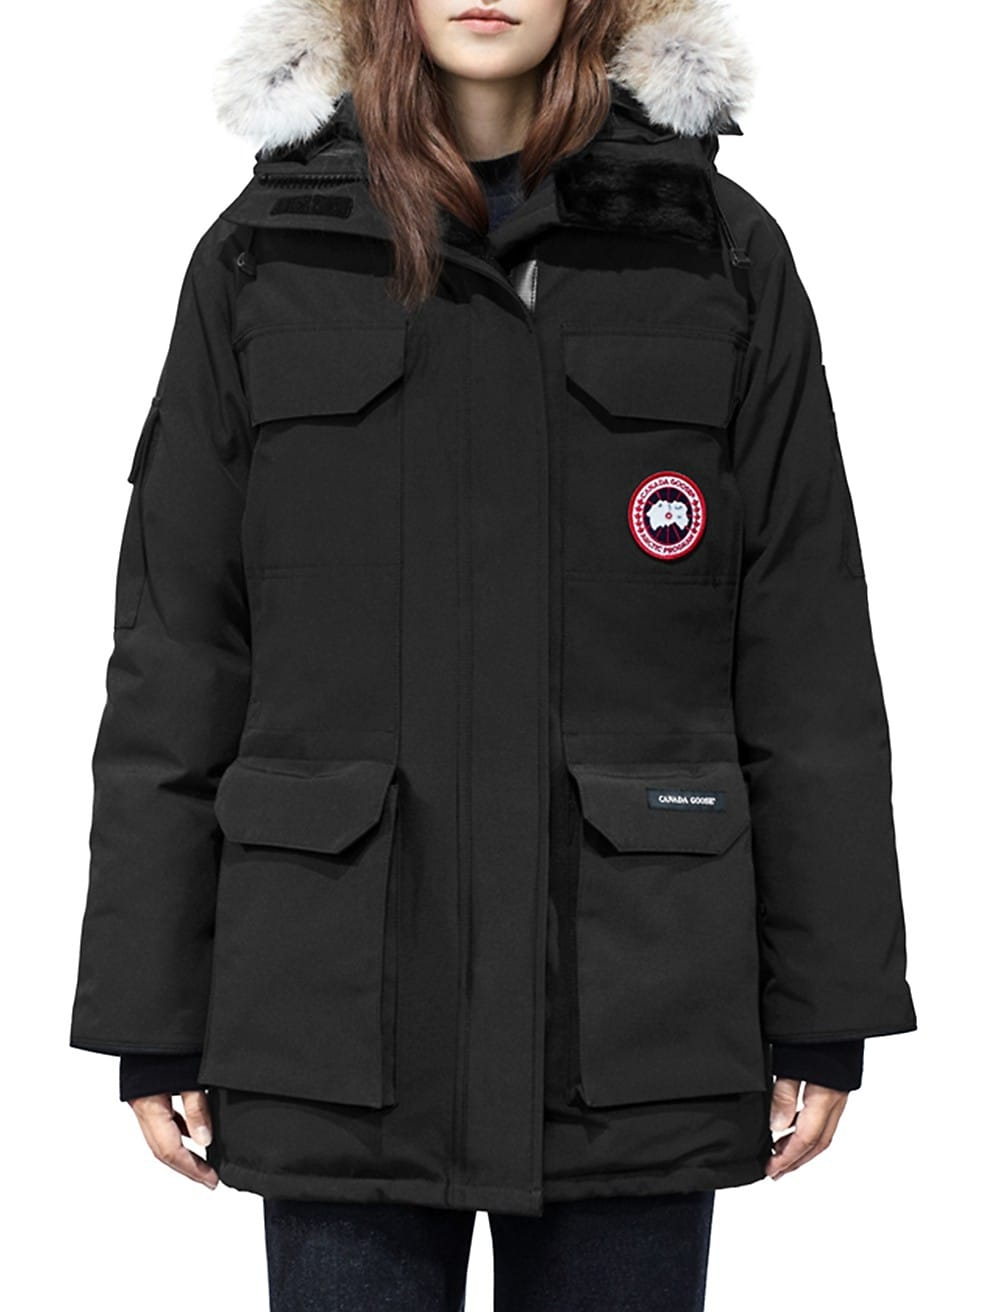 Saks Fifth Avenue: 20% off Canada Goose